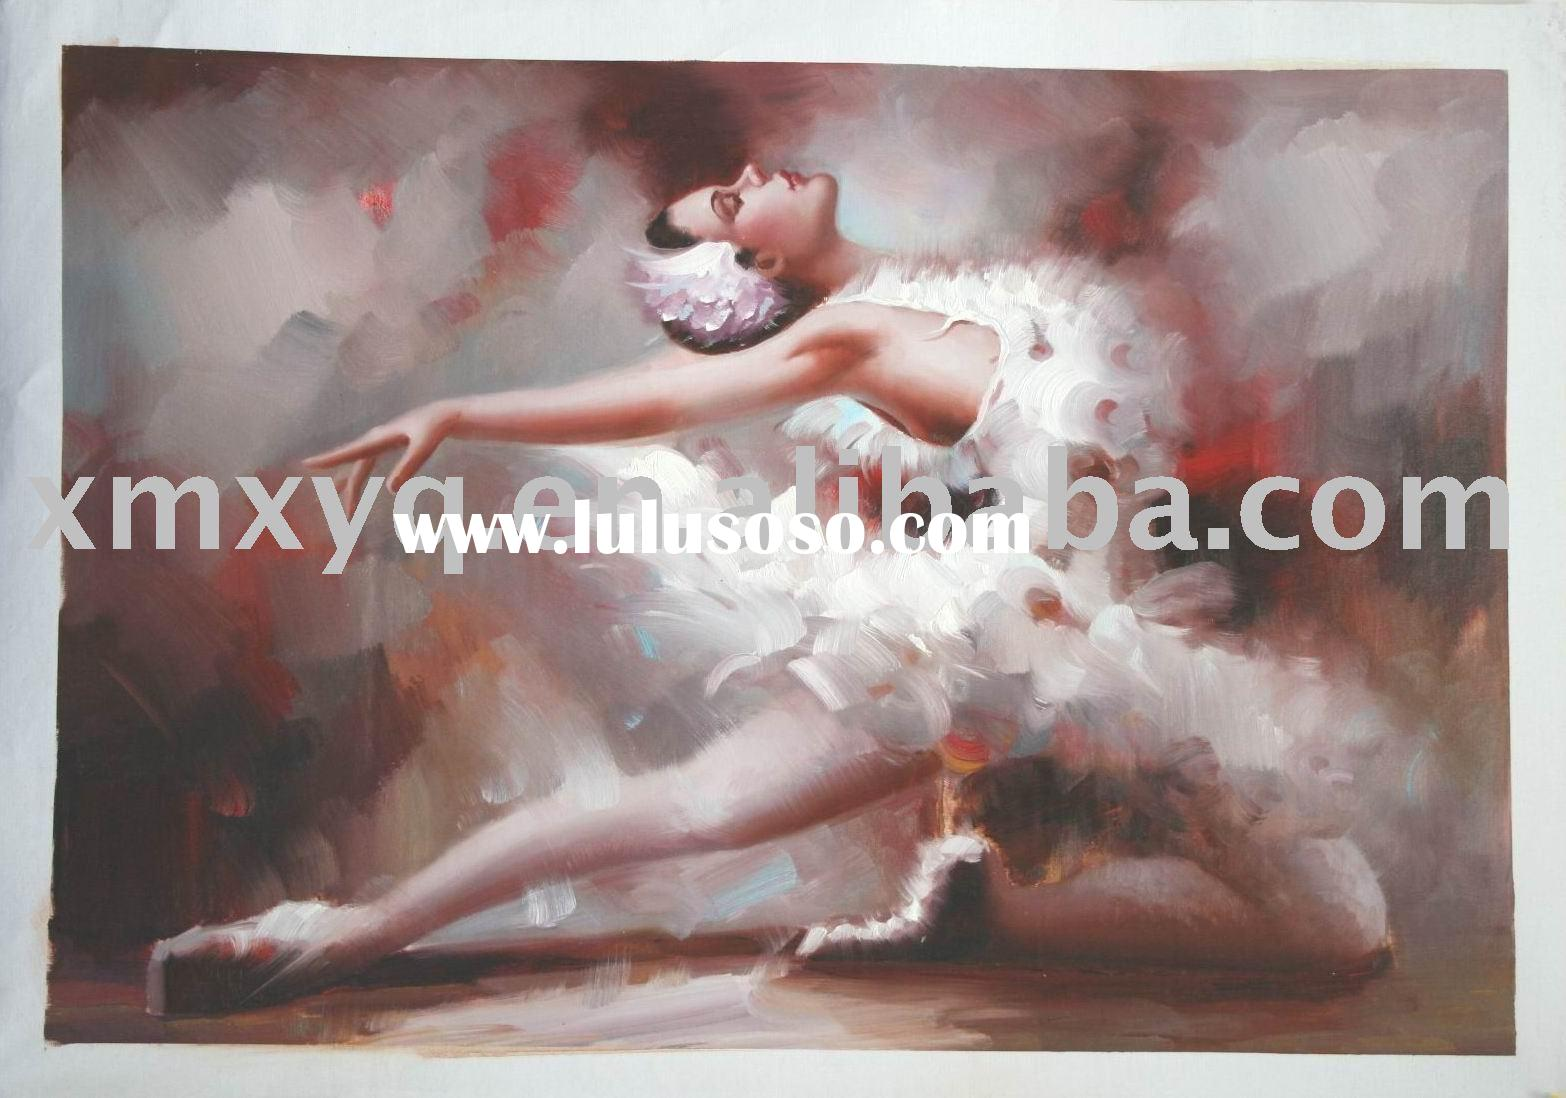 dancer on canvas painting(hand-painted,oil painting)